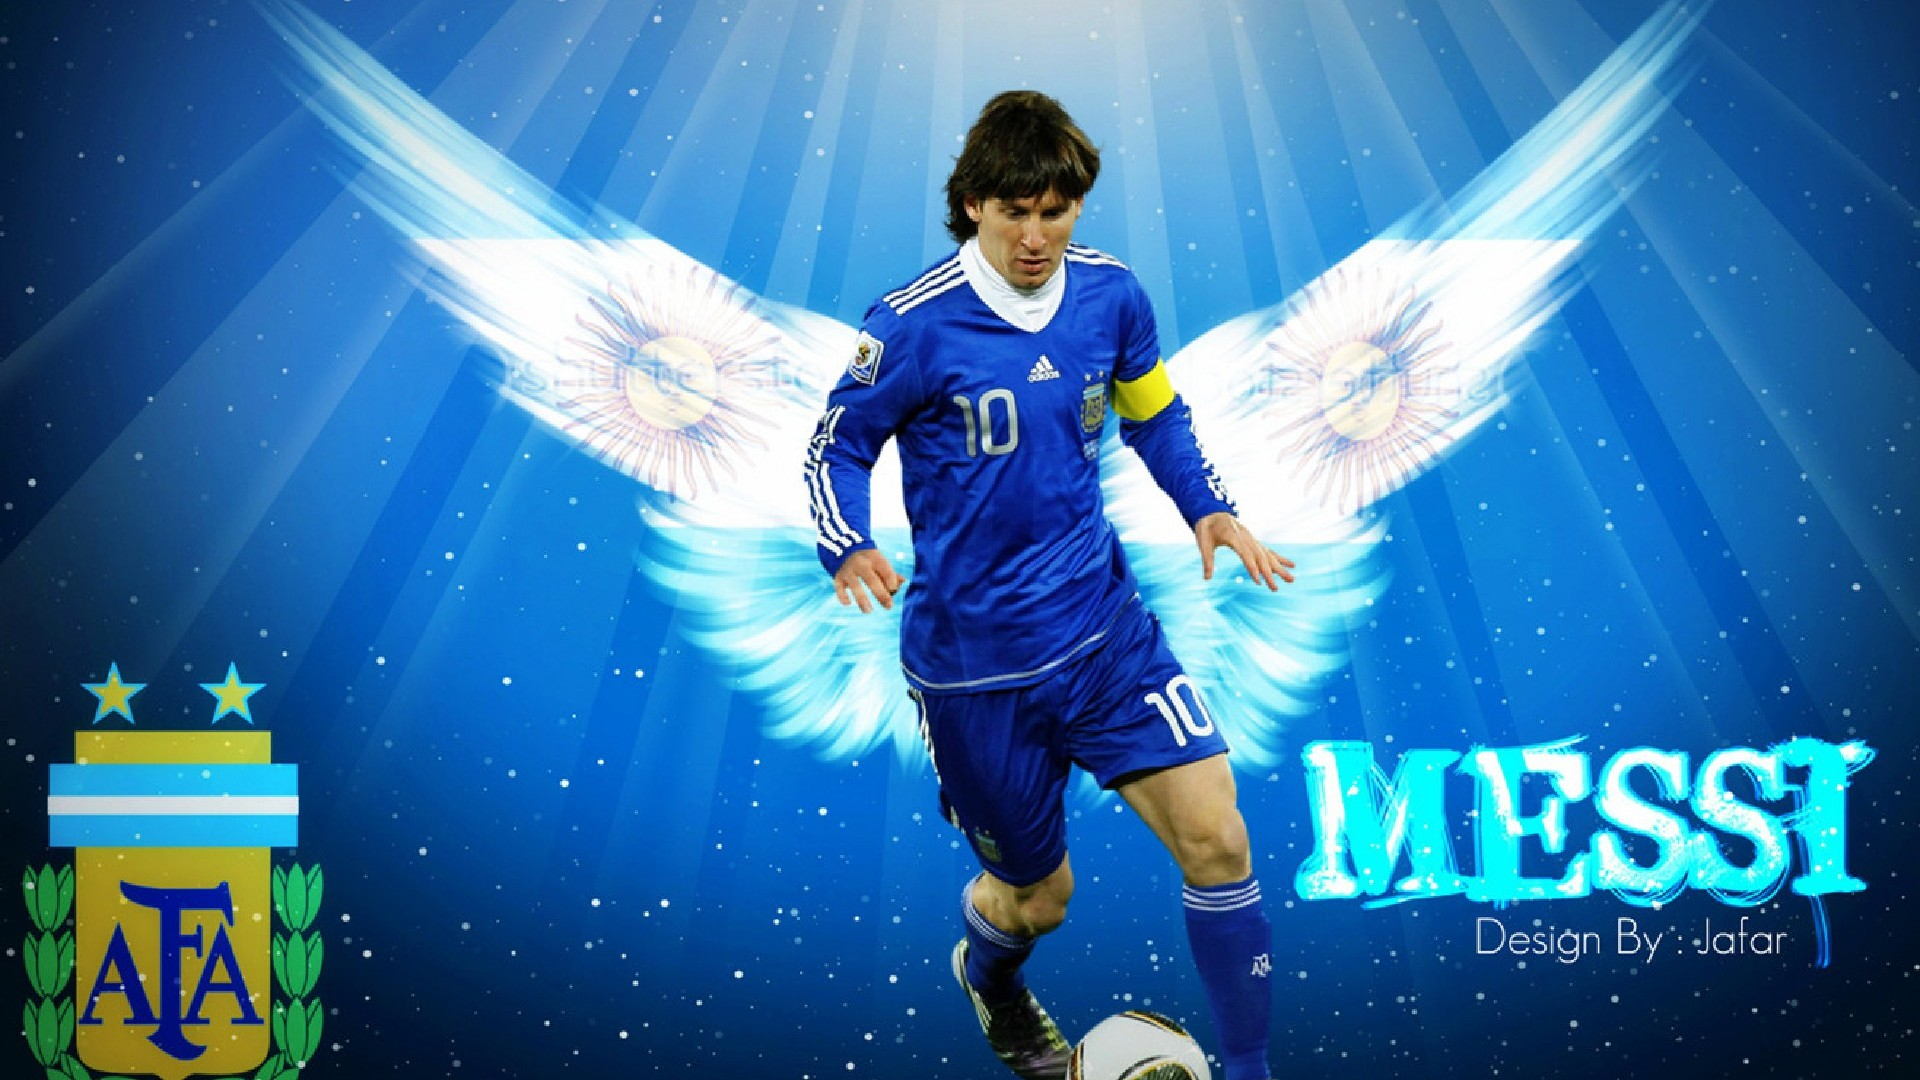 Lionel Messi Football Wallpaper Picture 970 Wallpaper 1920x1080